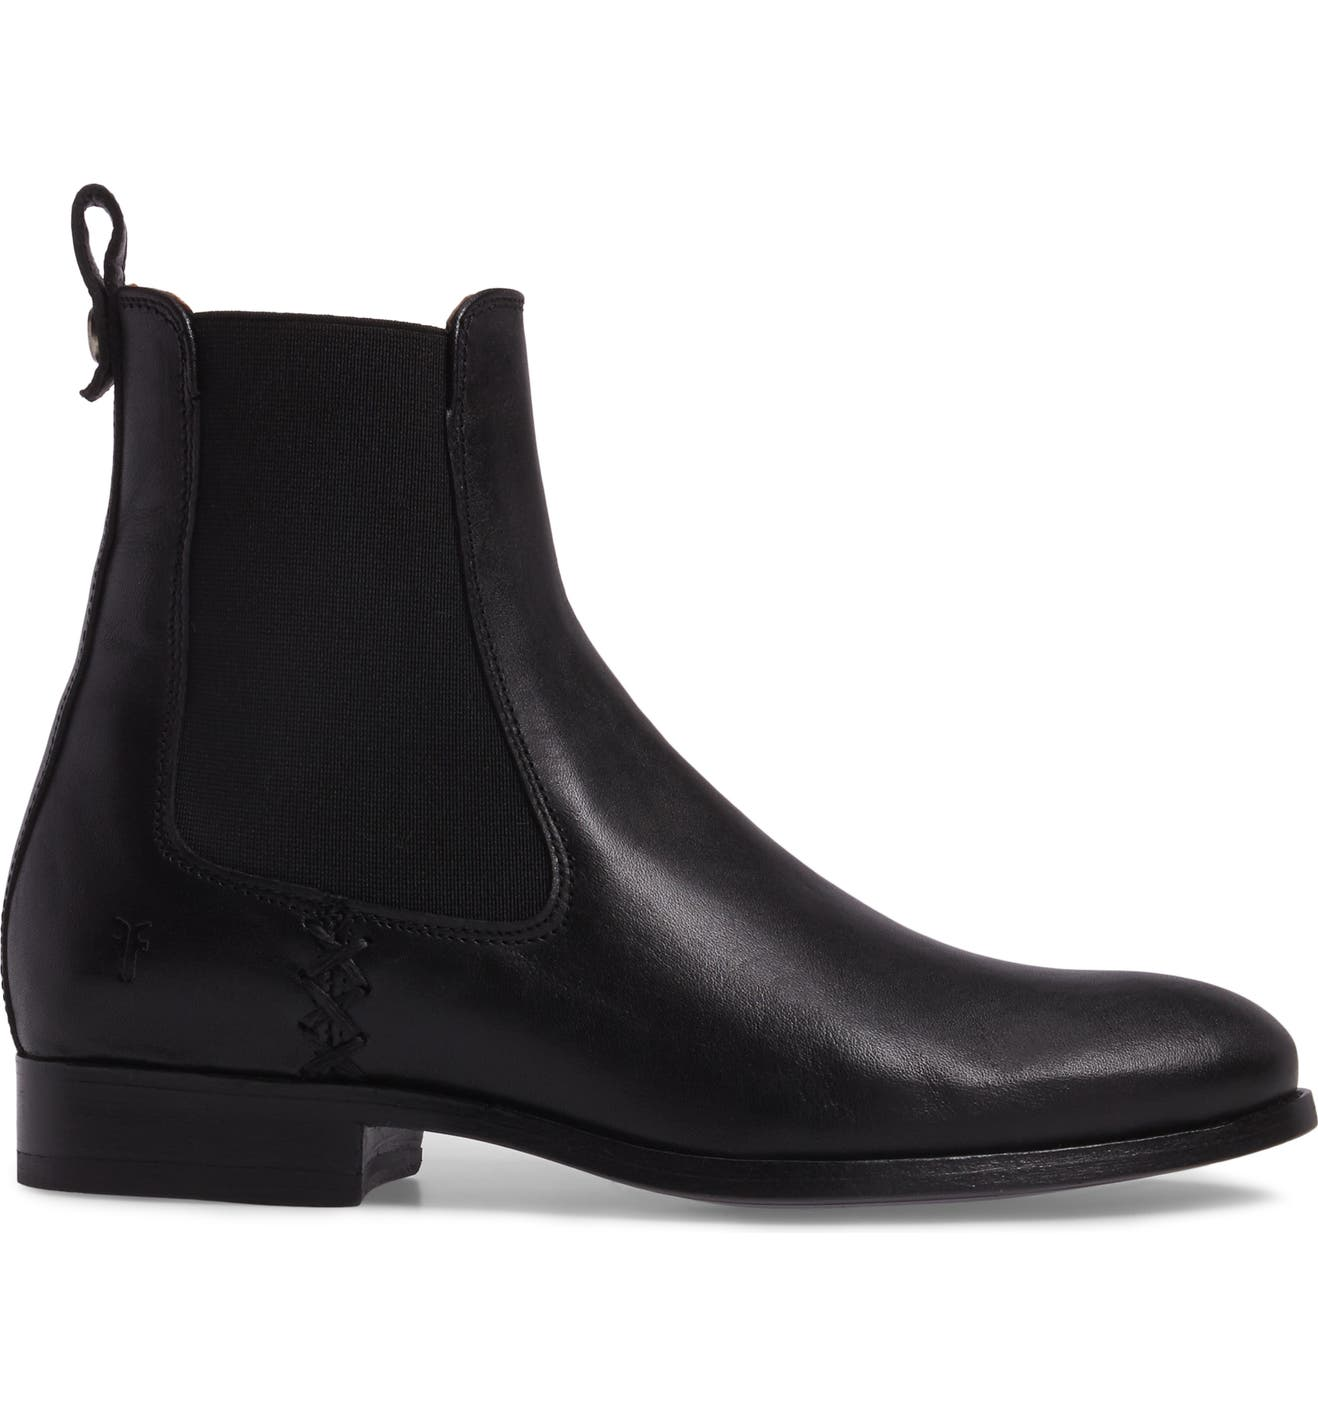 3a12f987c59 Melissa Chelsea Boot